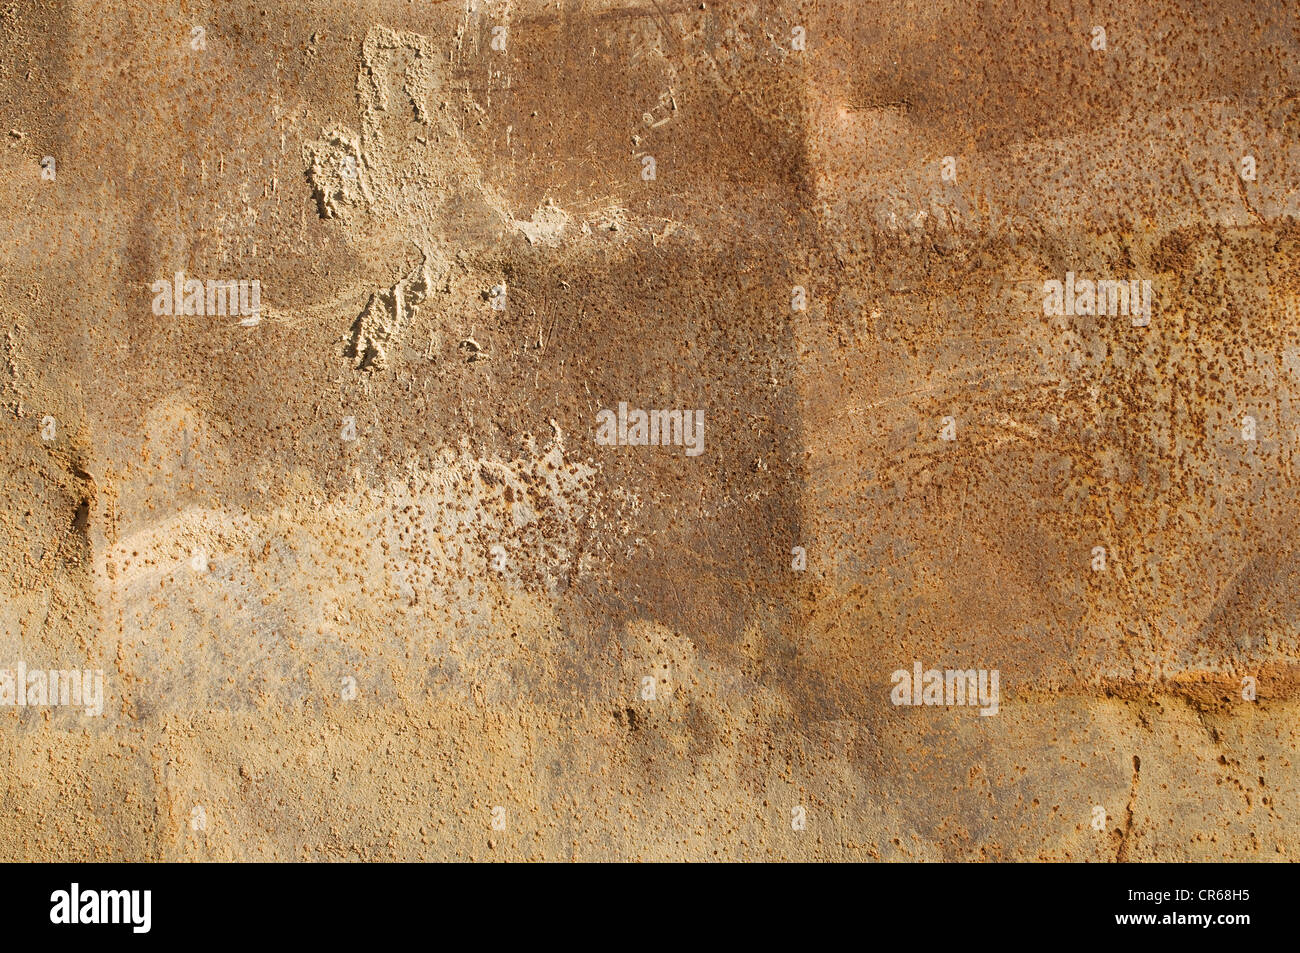 Rusty metal surface, background - Stock Image